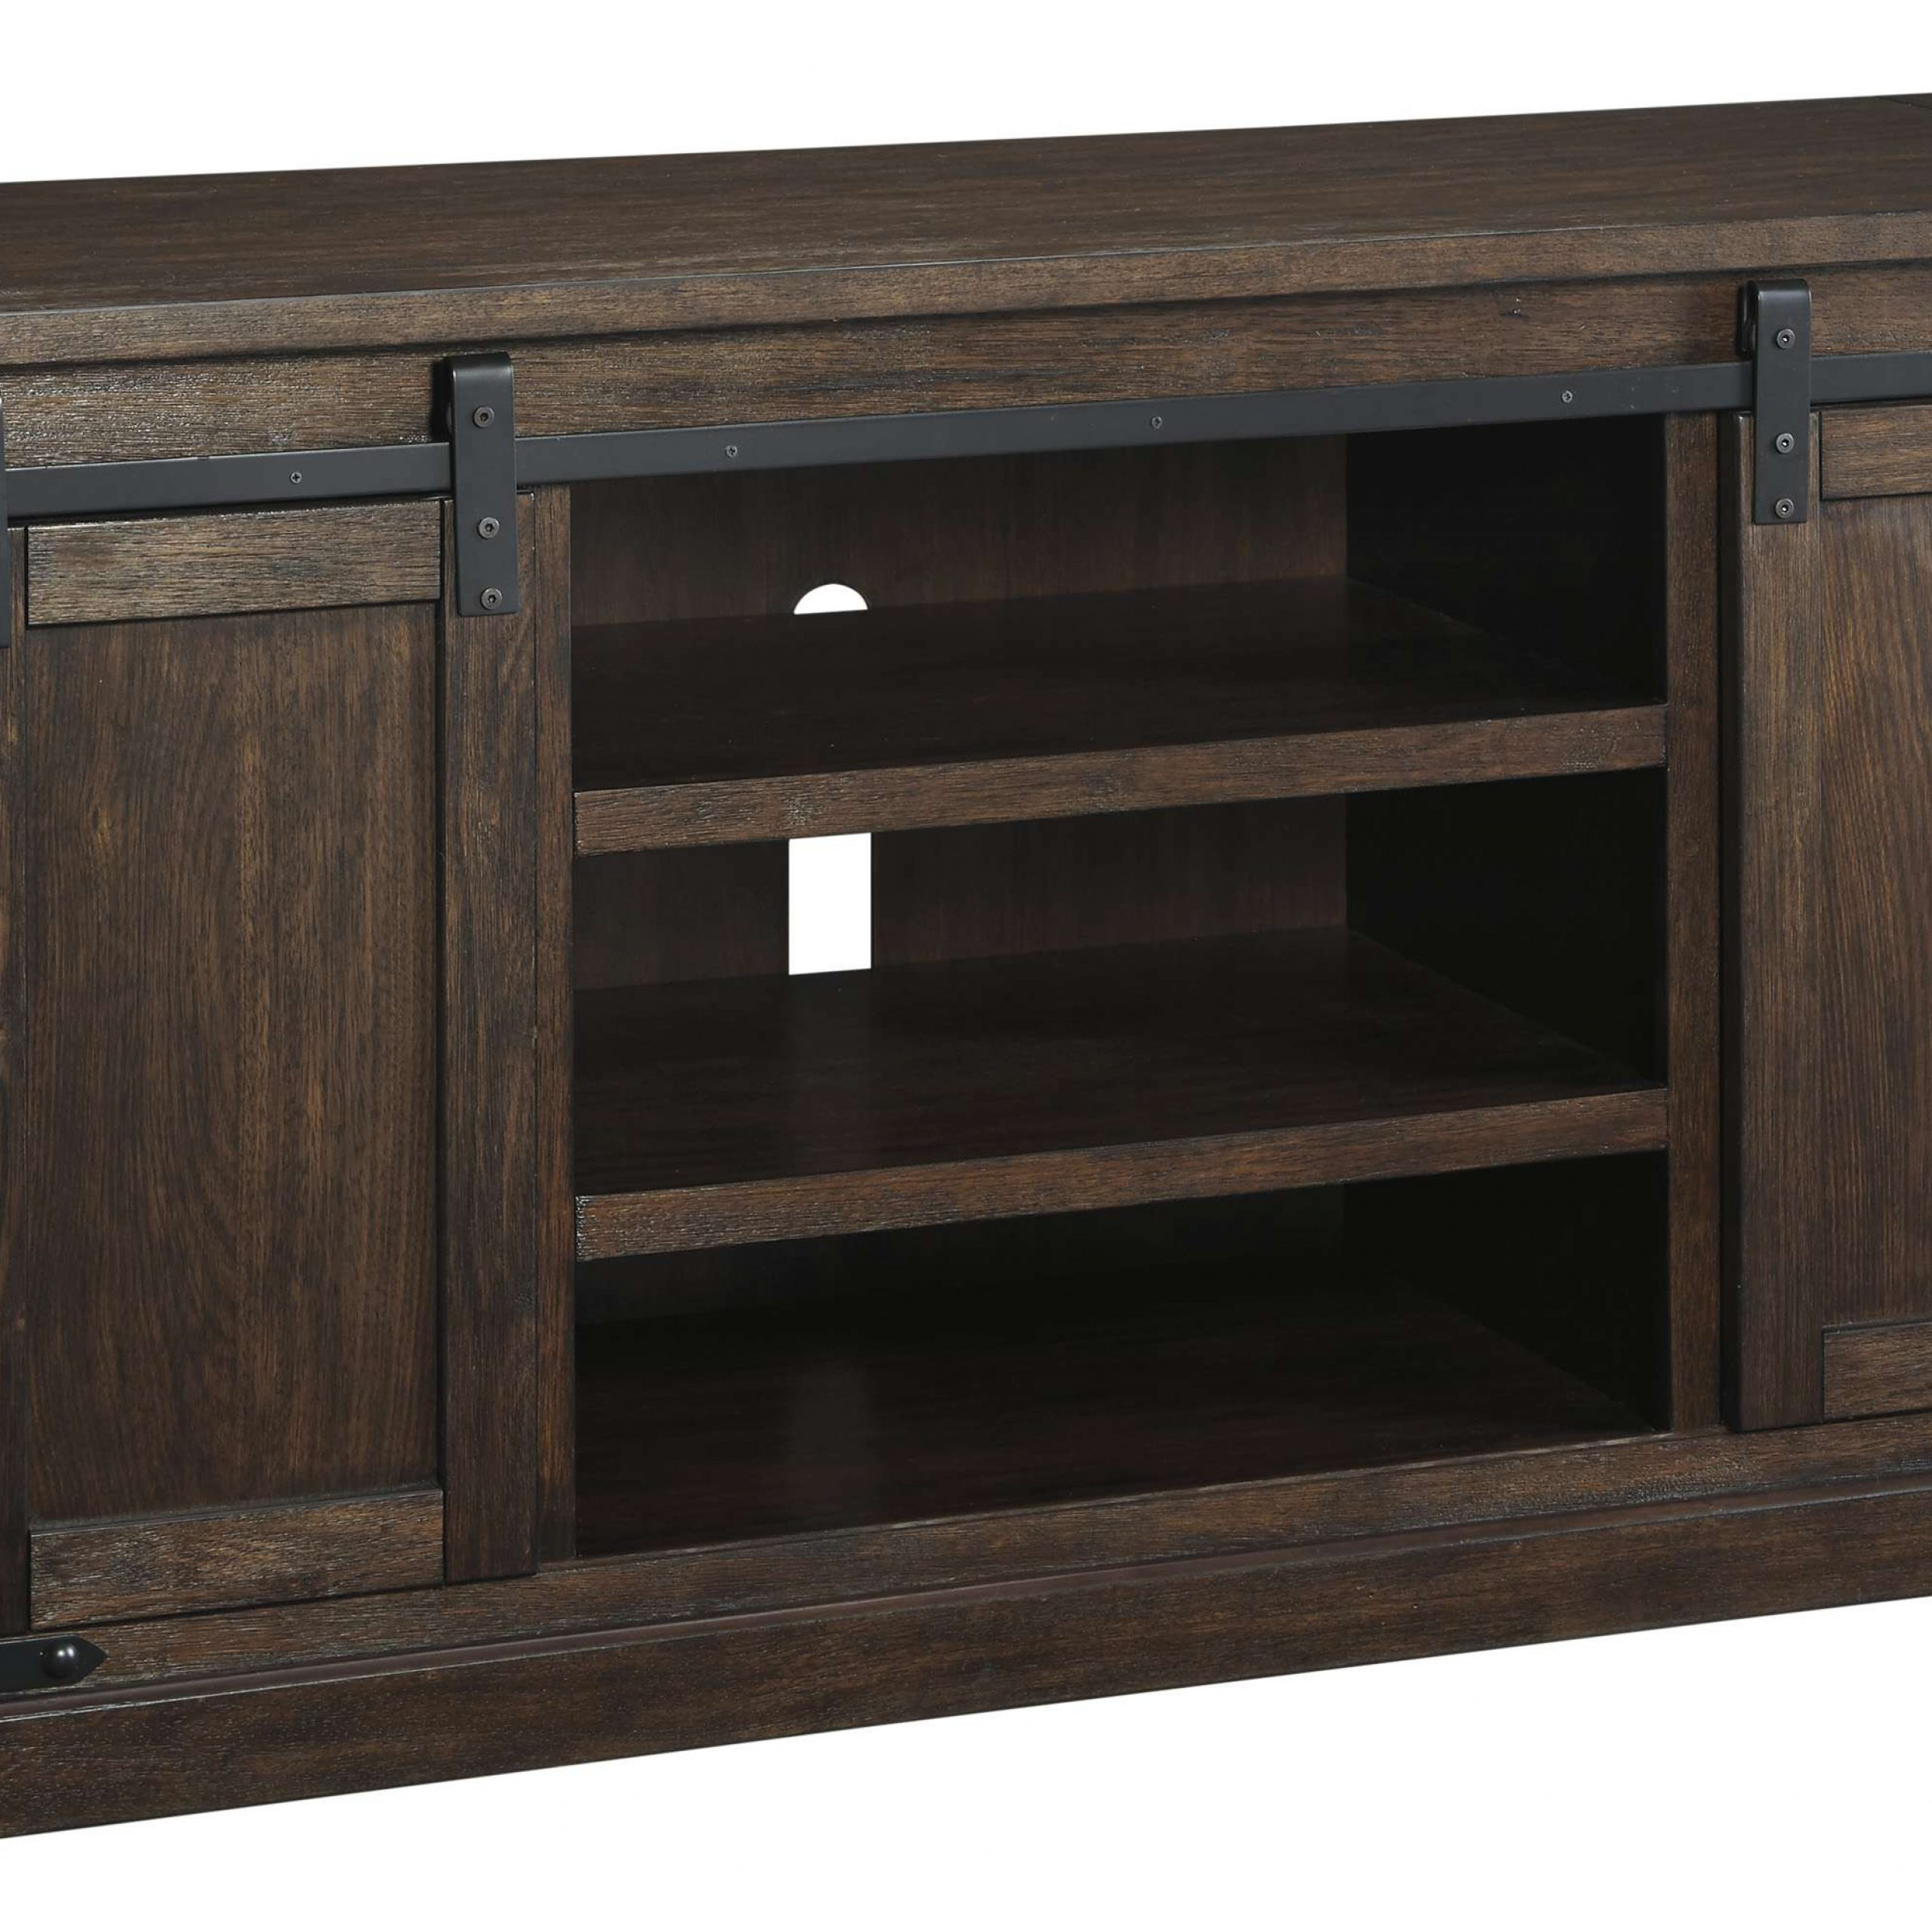 Signature Designashley Budmore Rustic Brown Large Tv In Industrial Tv Stands With Metal Legs Rustic Brown (View 12 of 15)